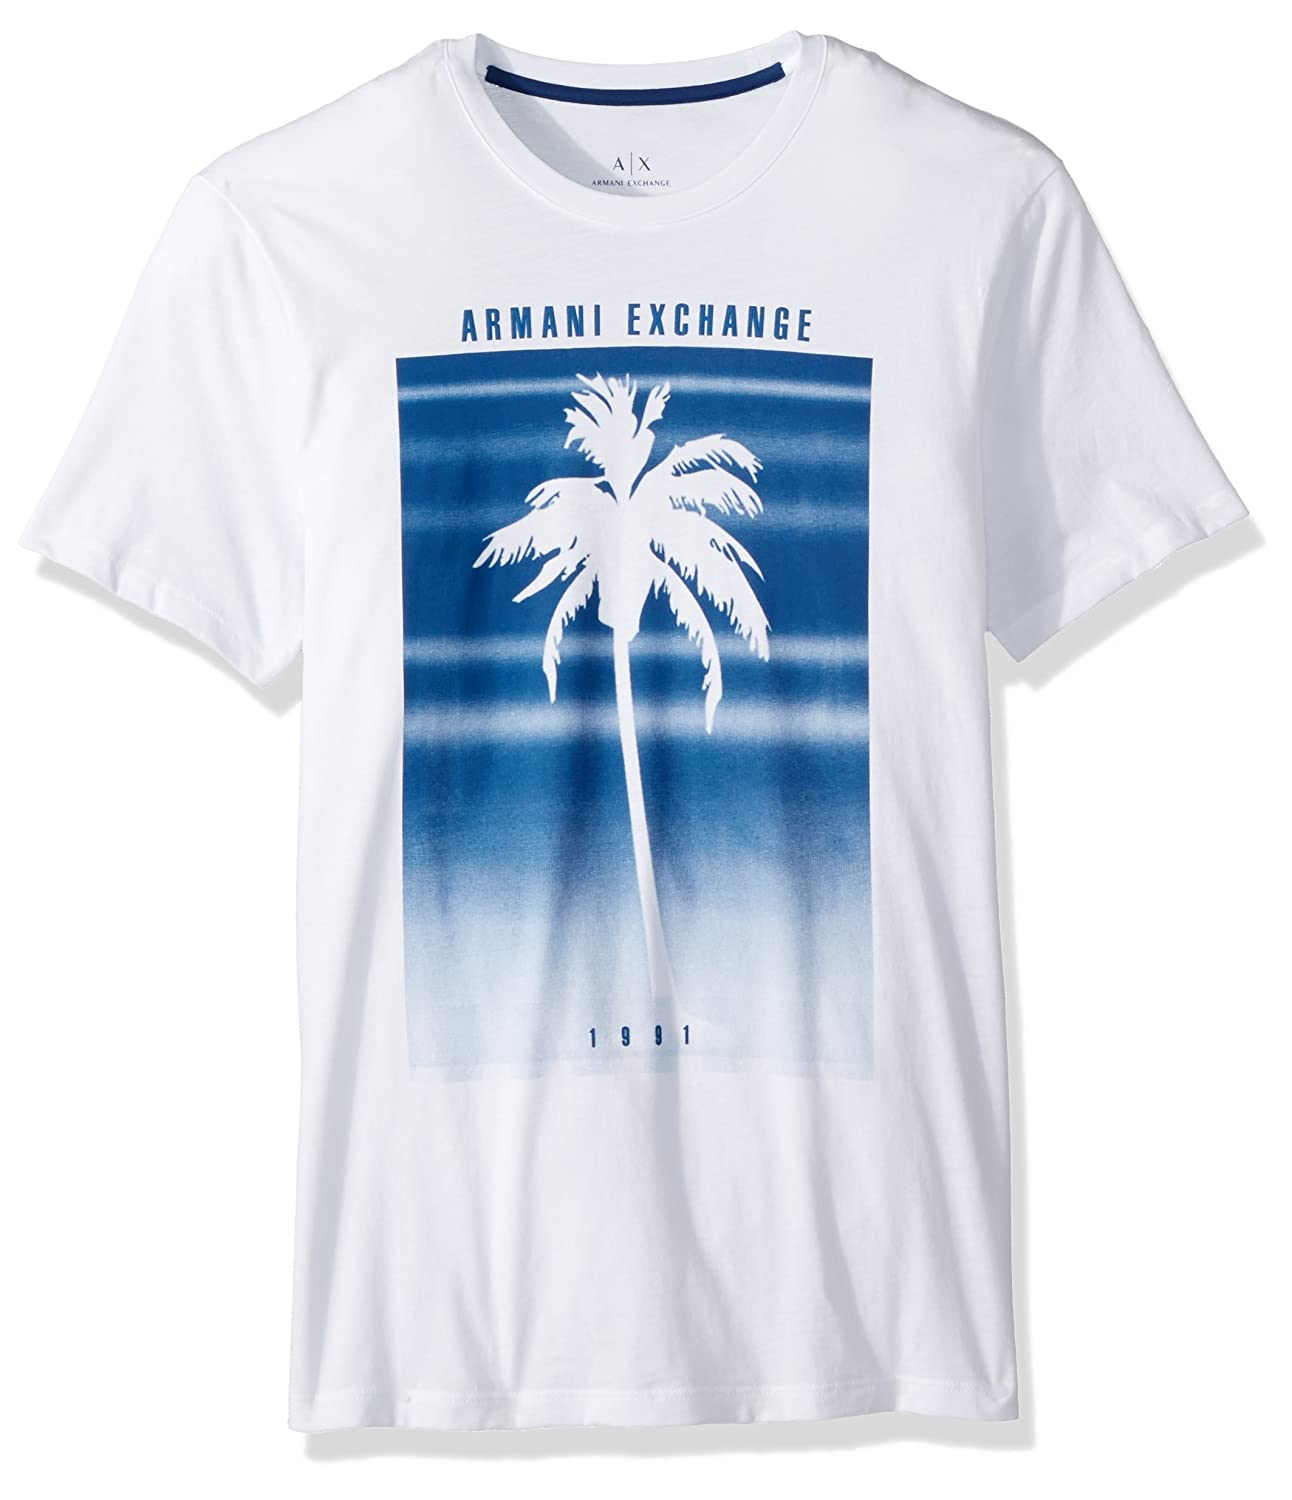 ea93b30e42e Amazon.com: A|X Armani Exchange Men's Palm Tree Fading Graphic Tee ...